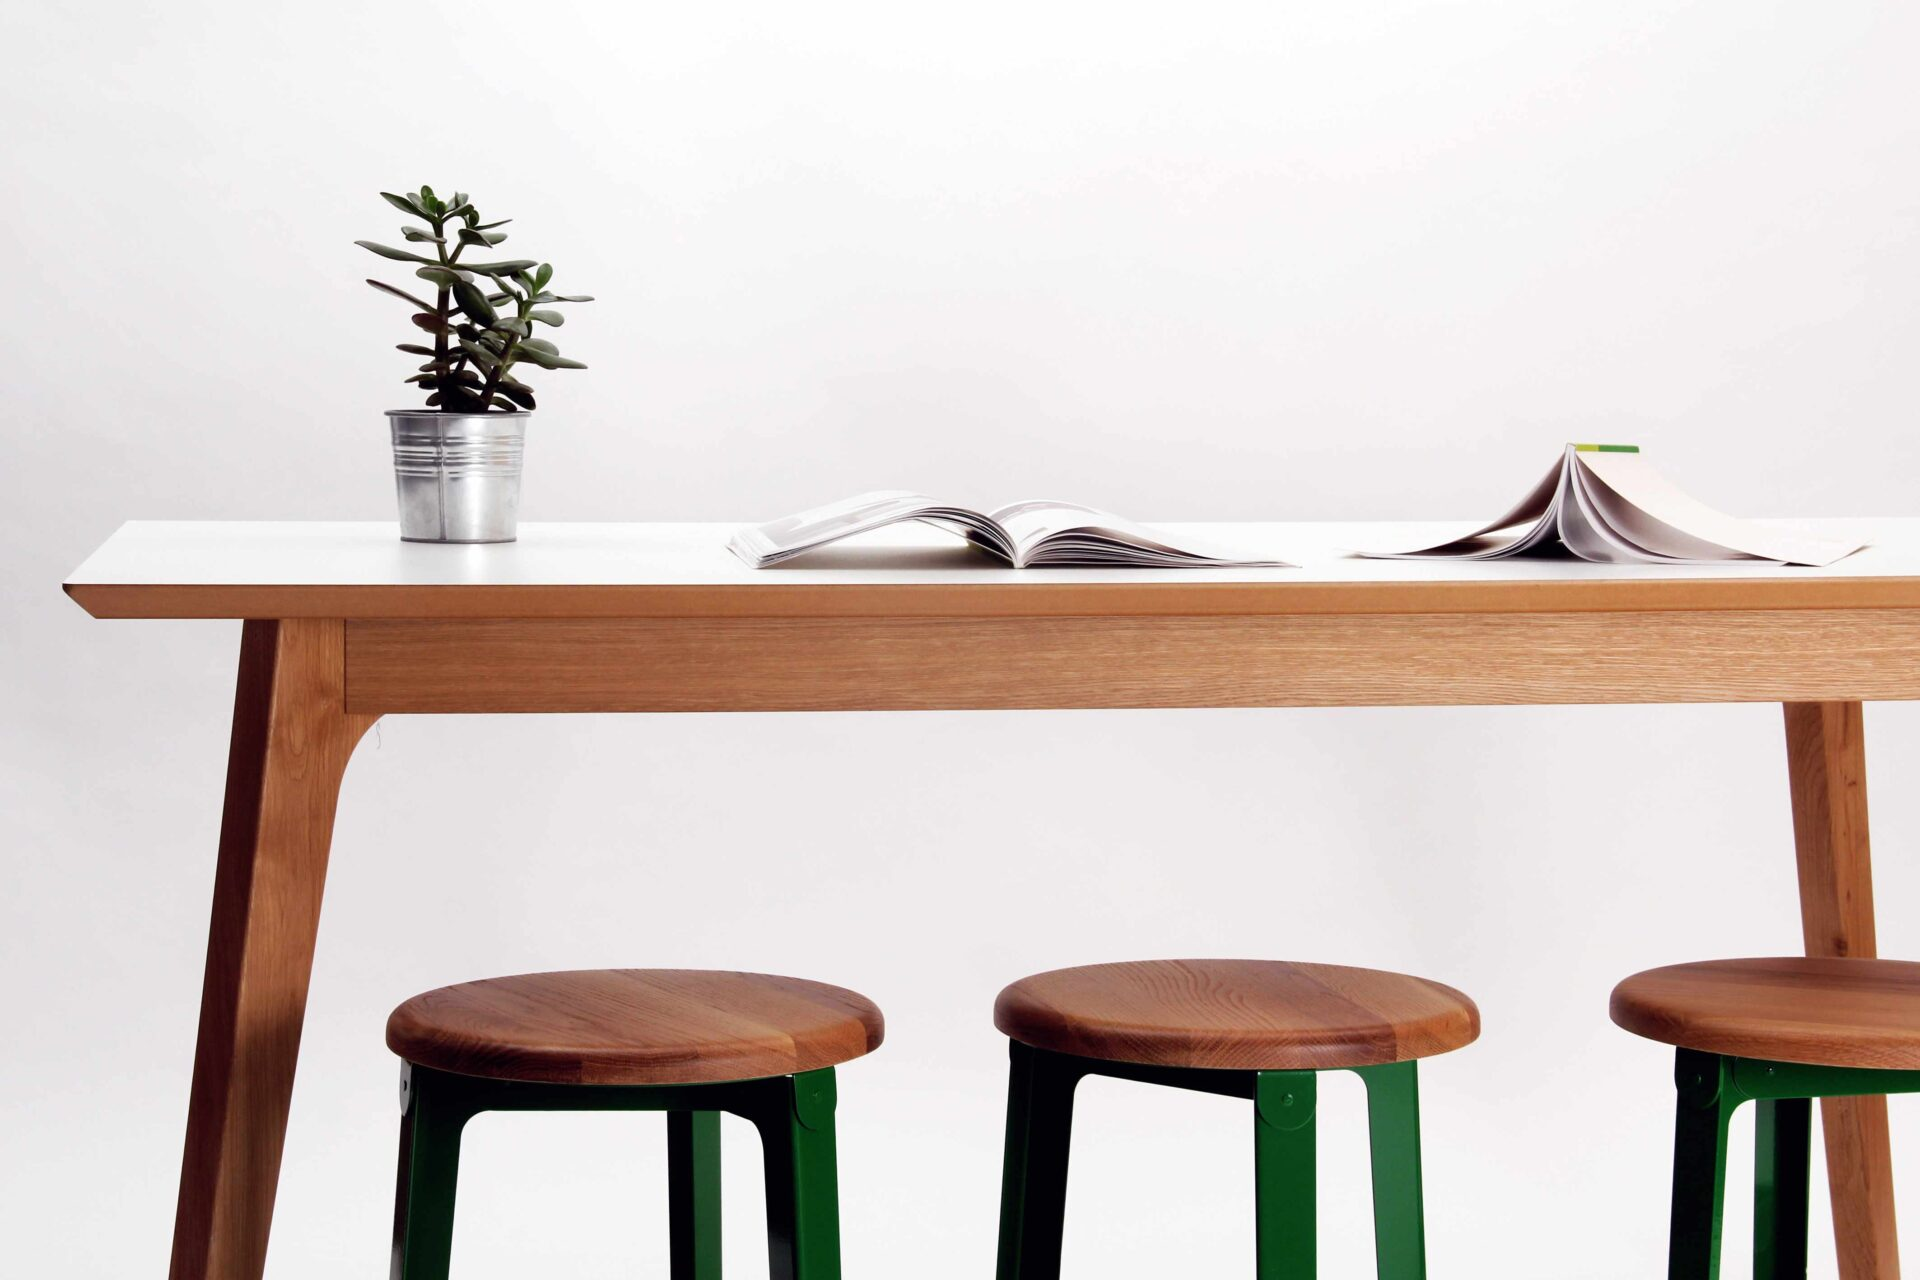 Dalby-table-end-detail-with-construct-stools-and-money-plant